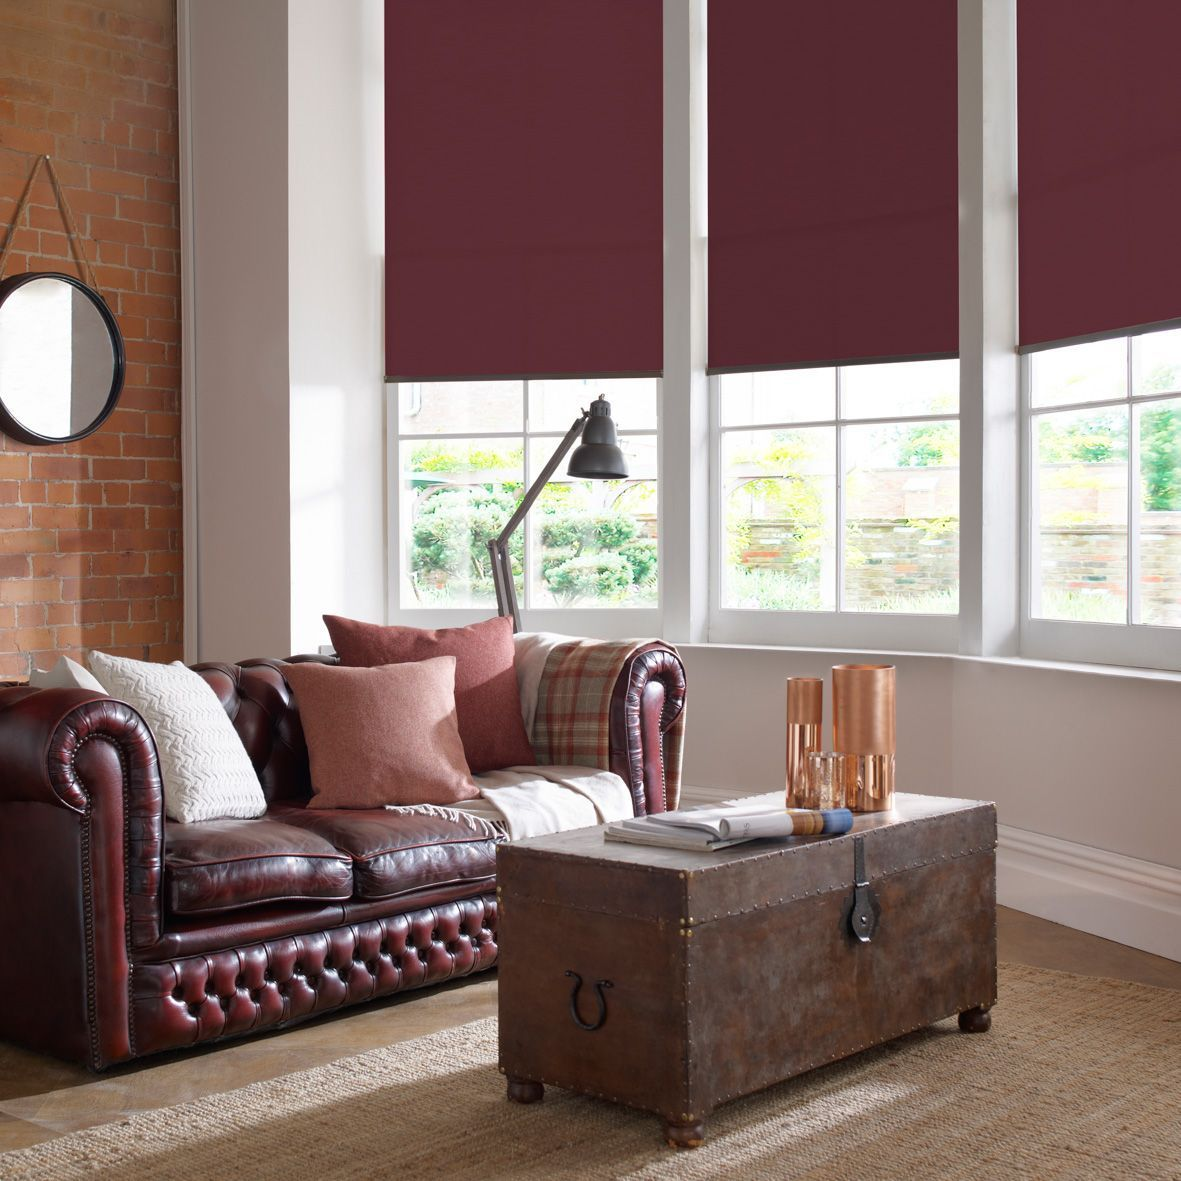 1c681656f8e Name   Polaris Made-to-Measure Red Wine Roller Blinds Min Max Width   240mm    2400mm Min Max Drop   400mm   1800mm Comes With   Standard chord opening  ...